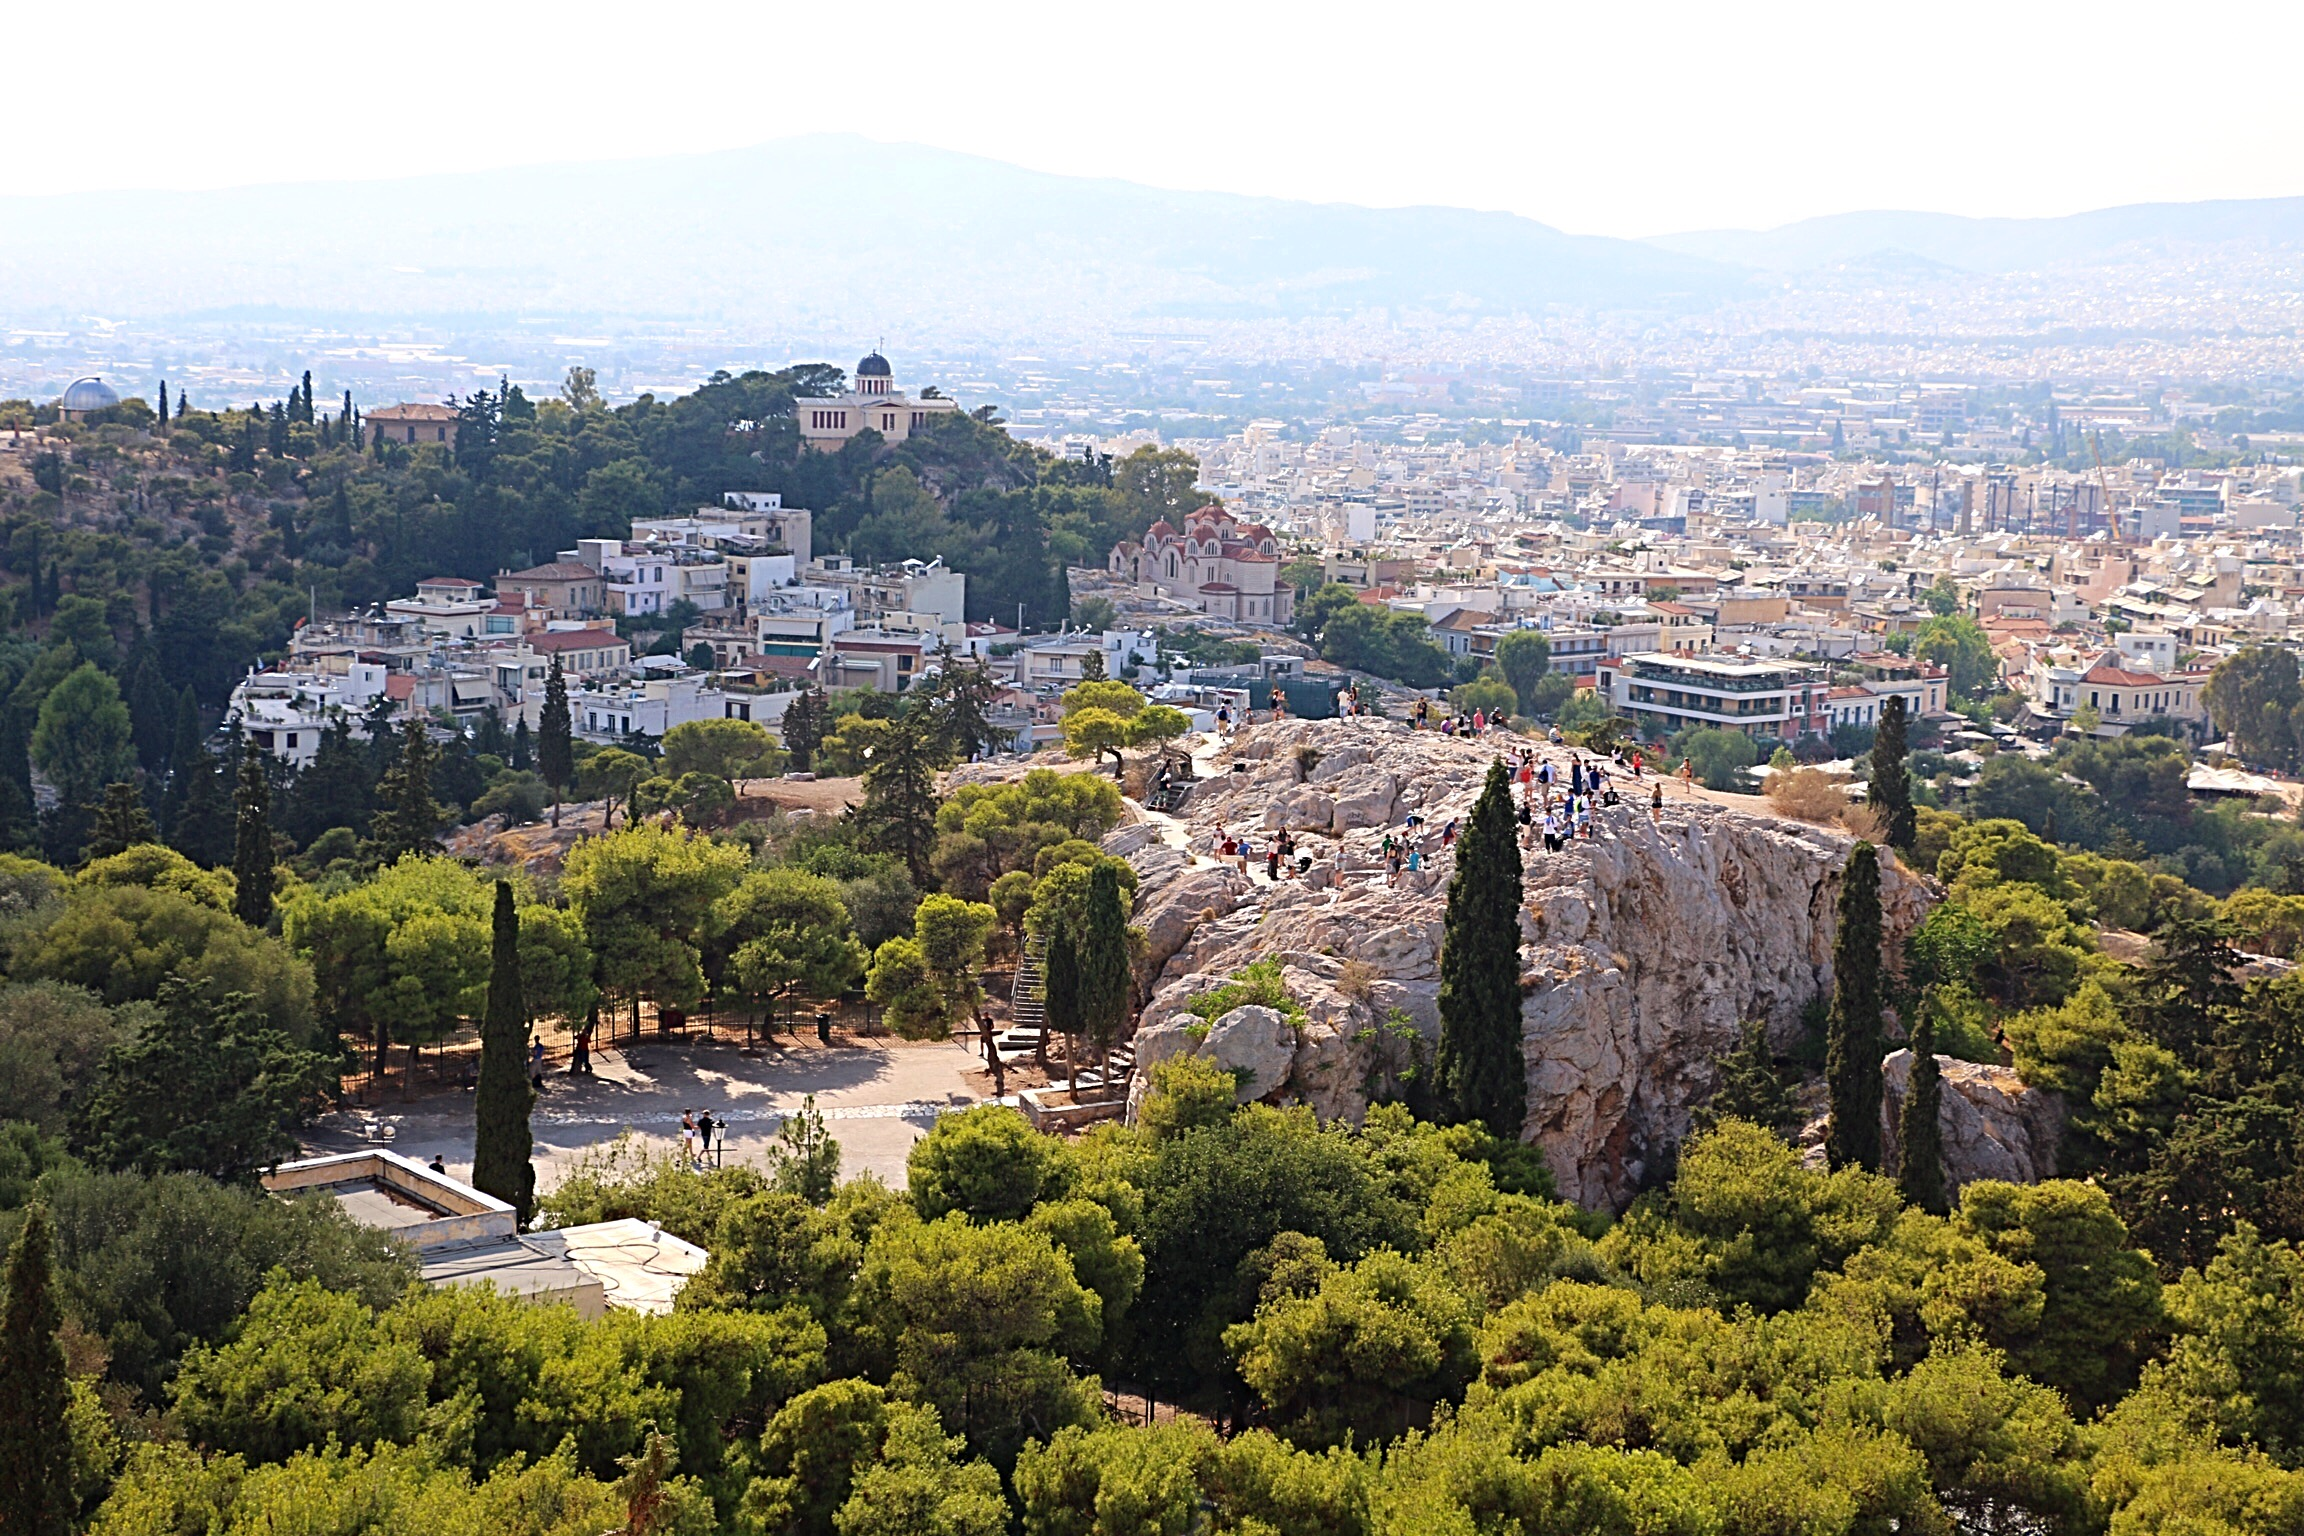 Continue Onward Down The Hill Toward The Agora And Other Parts Of This  Fabulous, Historic City.